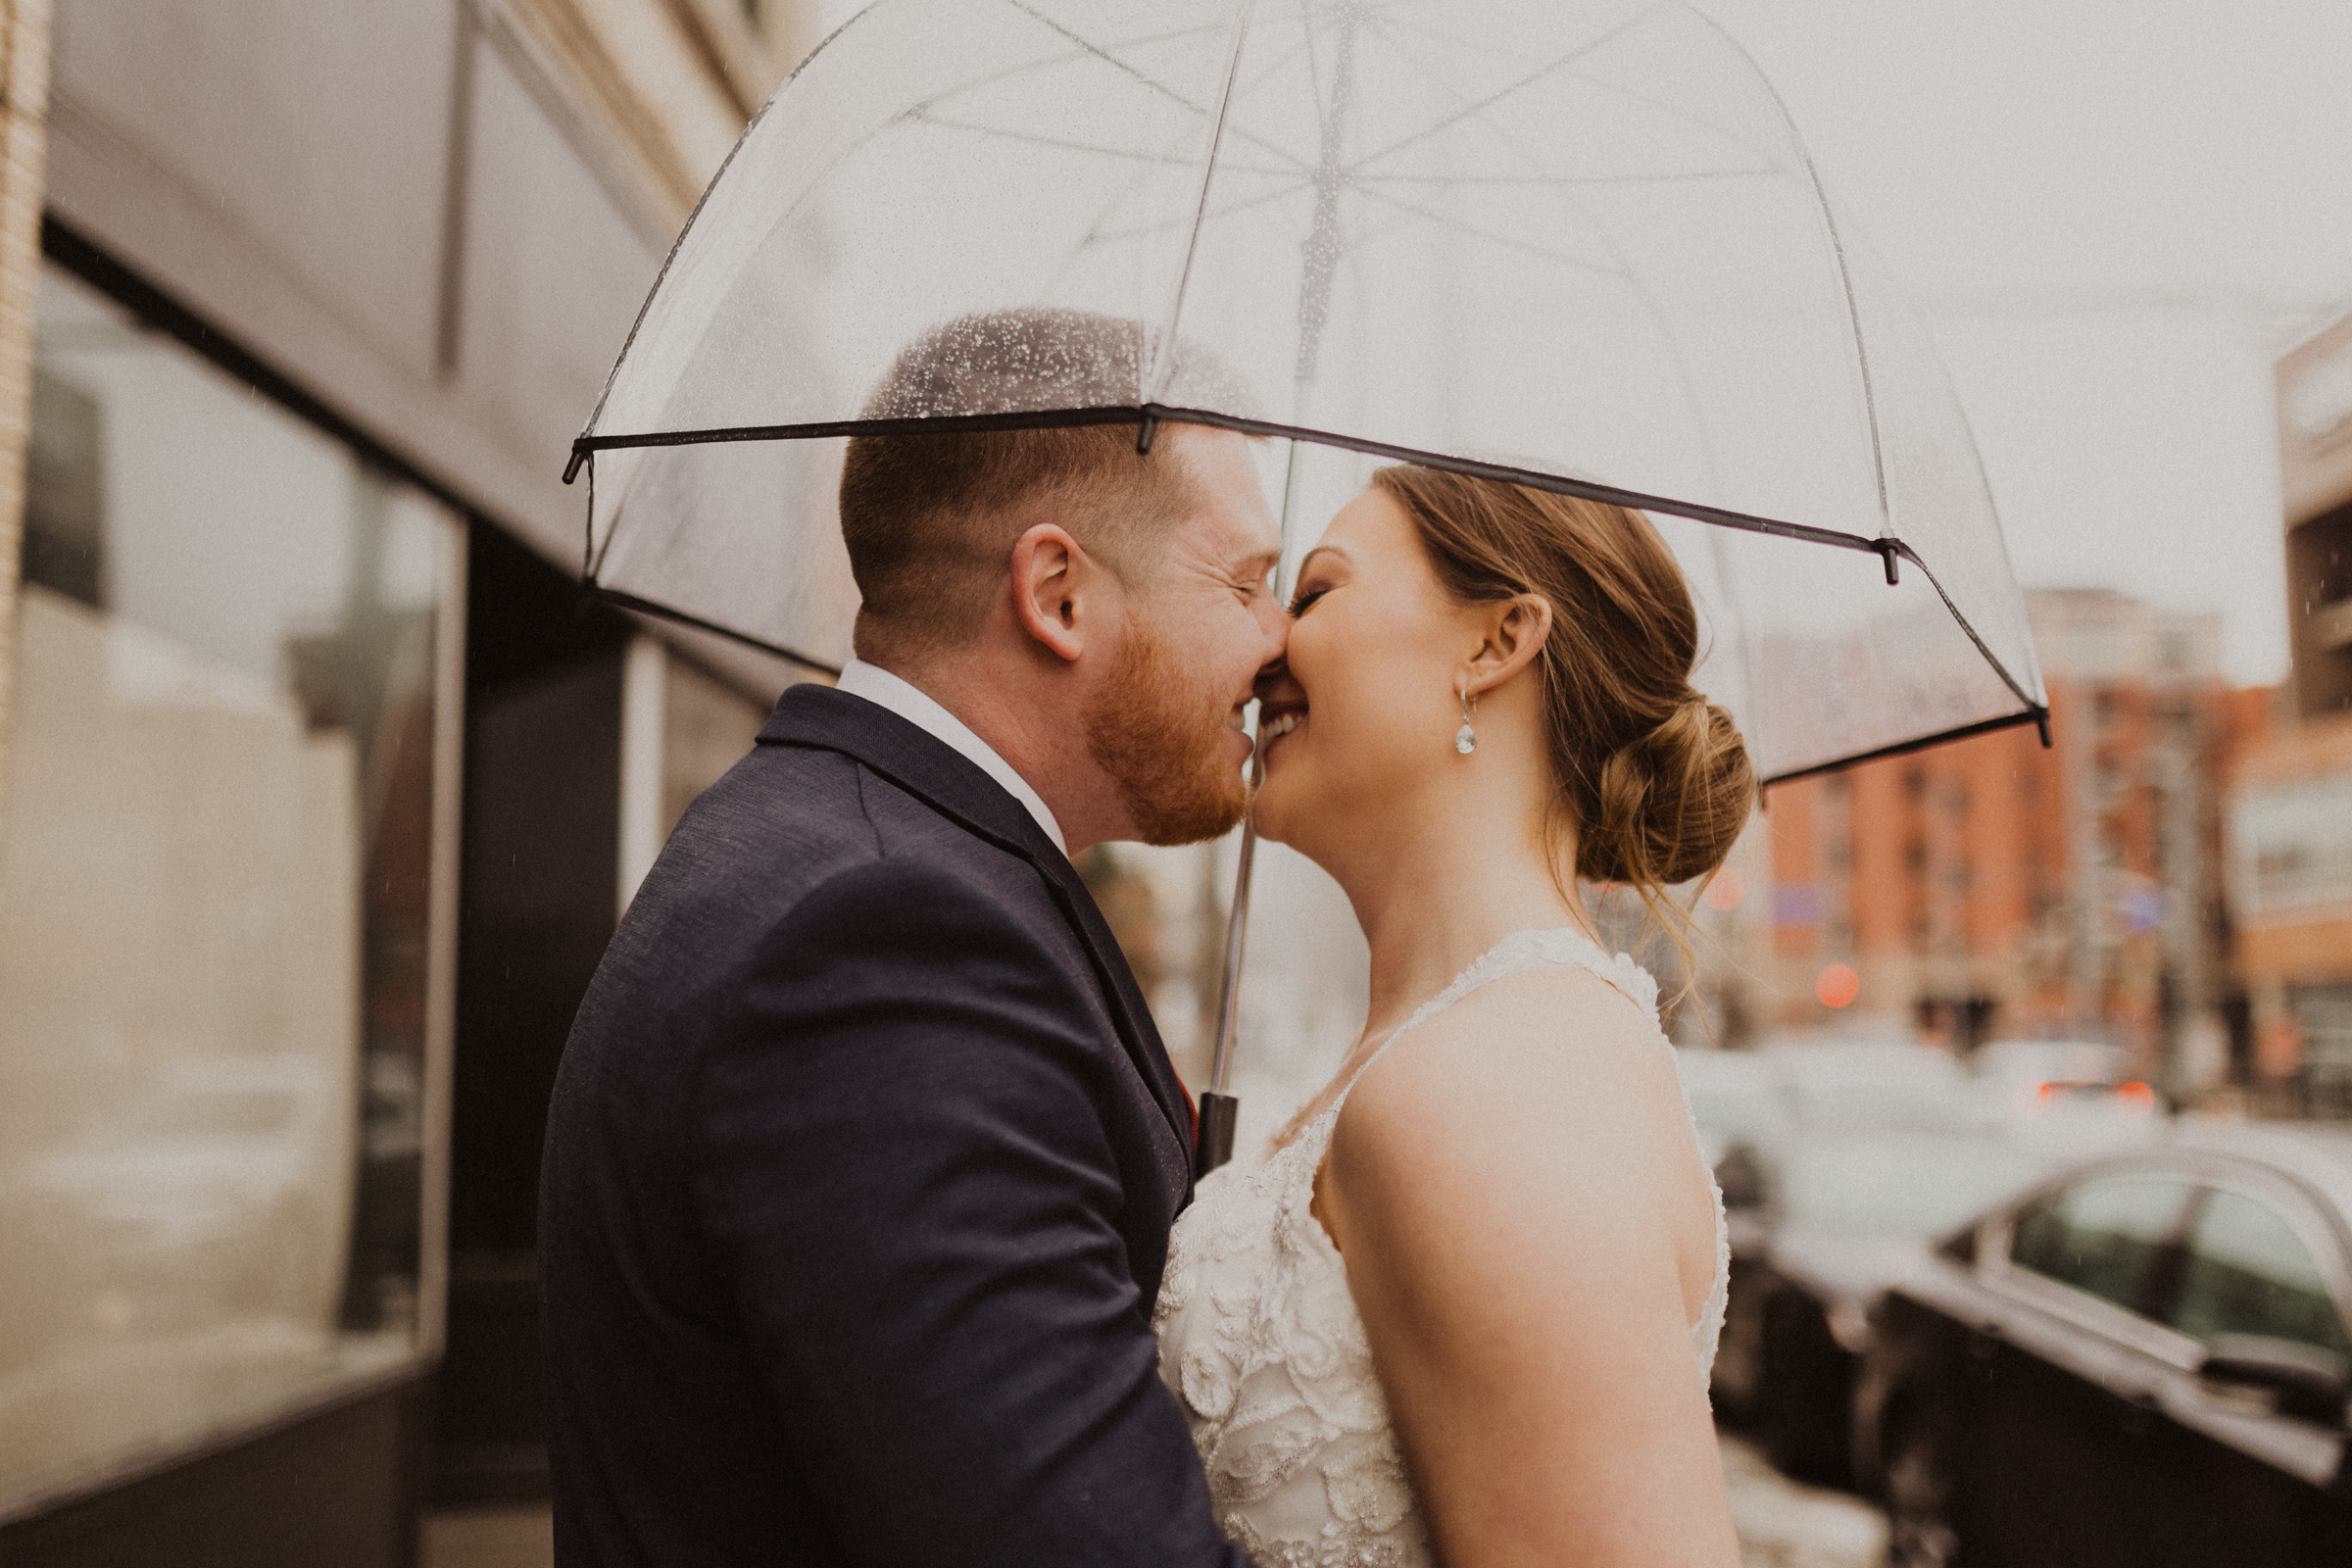 alyssa barletter photography 2016 main kansas city wedding rainy day photographer grace and justin magott-28.jpg